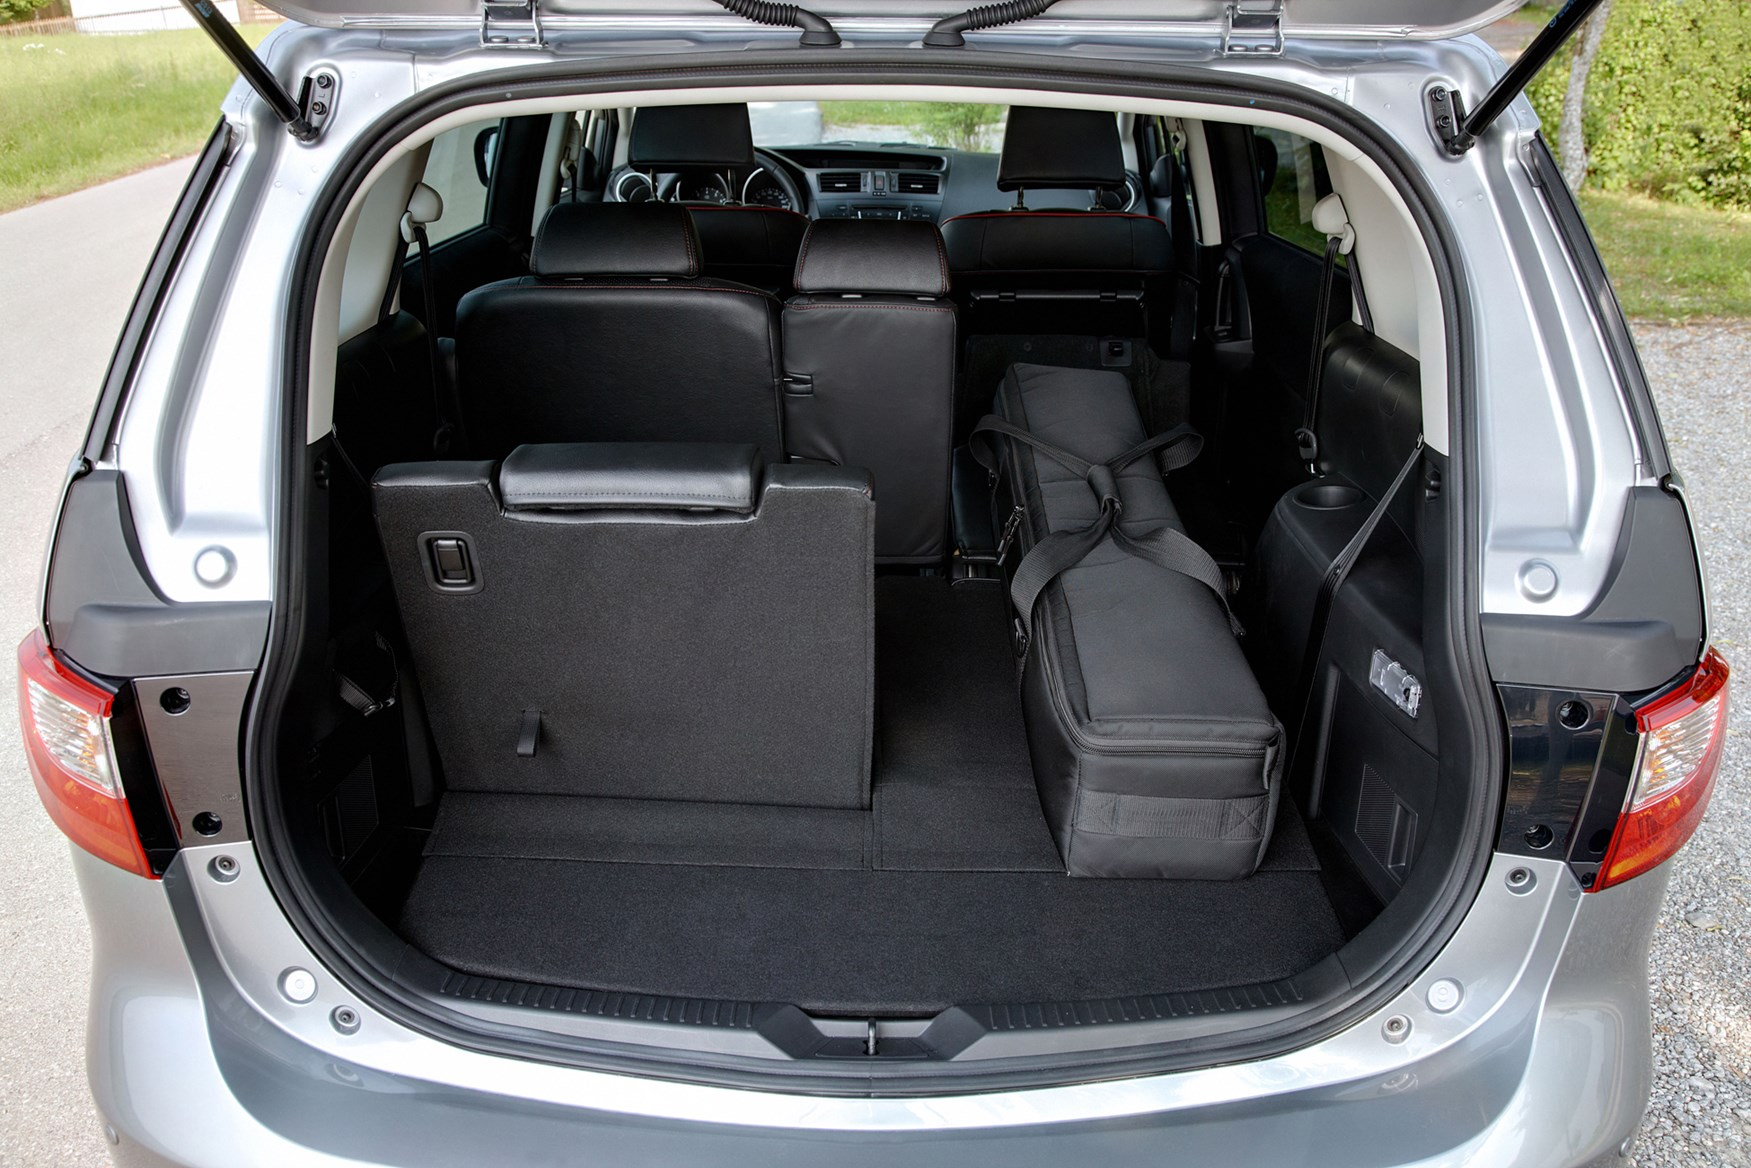 mazda 5 estate review 2010 2015 parkers. Black Bedroom Furniture Sets. Home Design Ideas